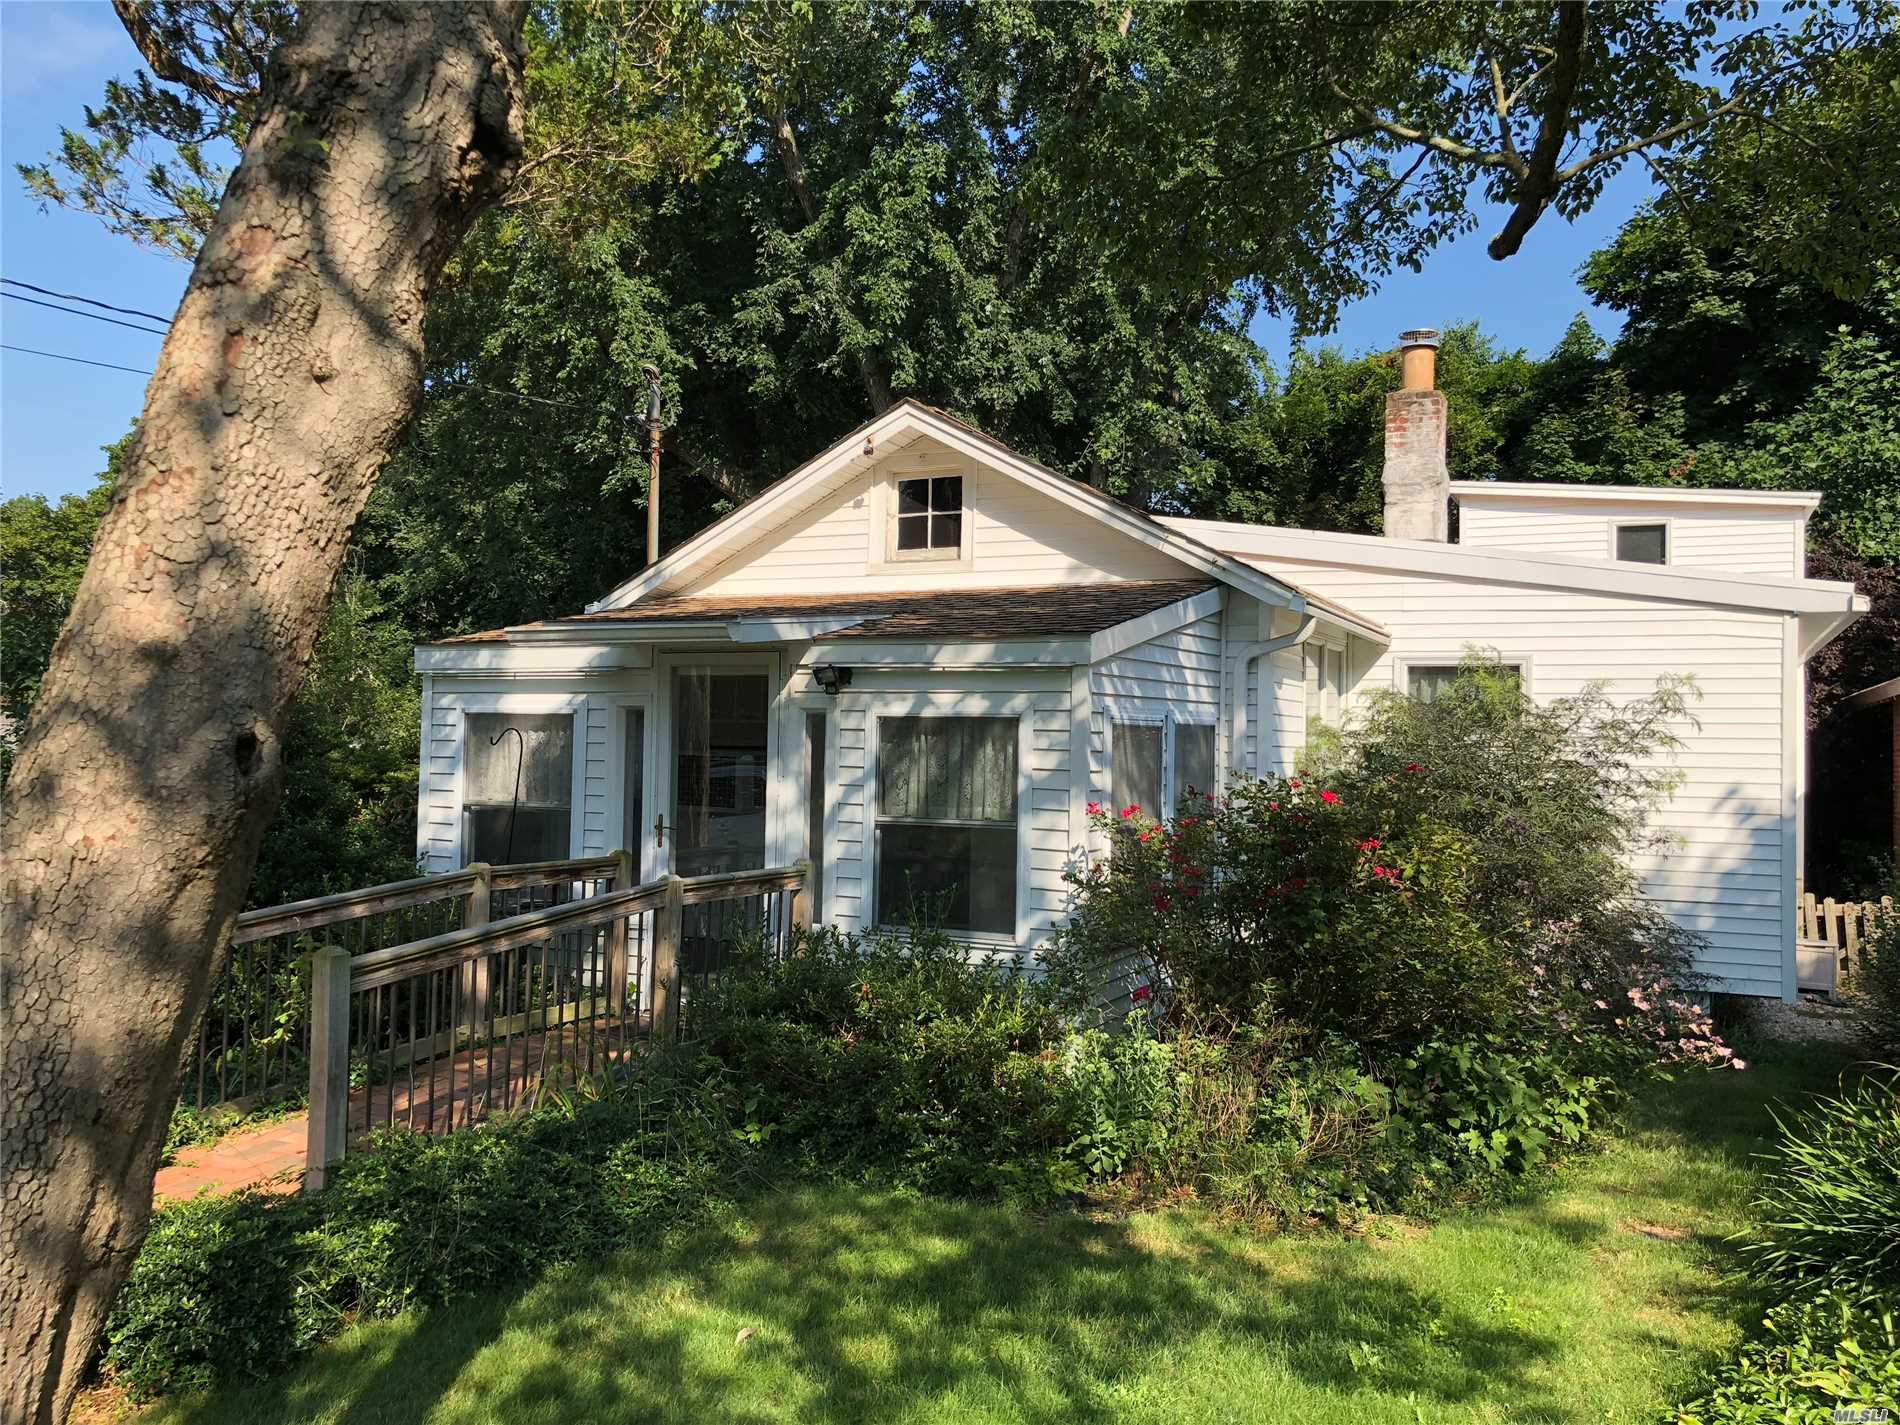 Cozy 2 Story Cottage In Old Stony Brook. 3 Bedrooms, 1.5 Baths With Washer And Dryer. Minutes From Lirr And University. Close To All.